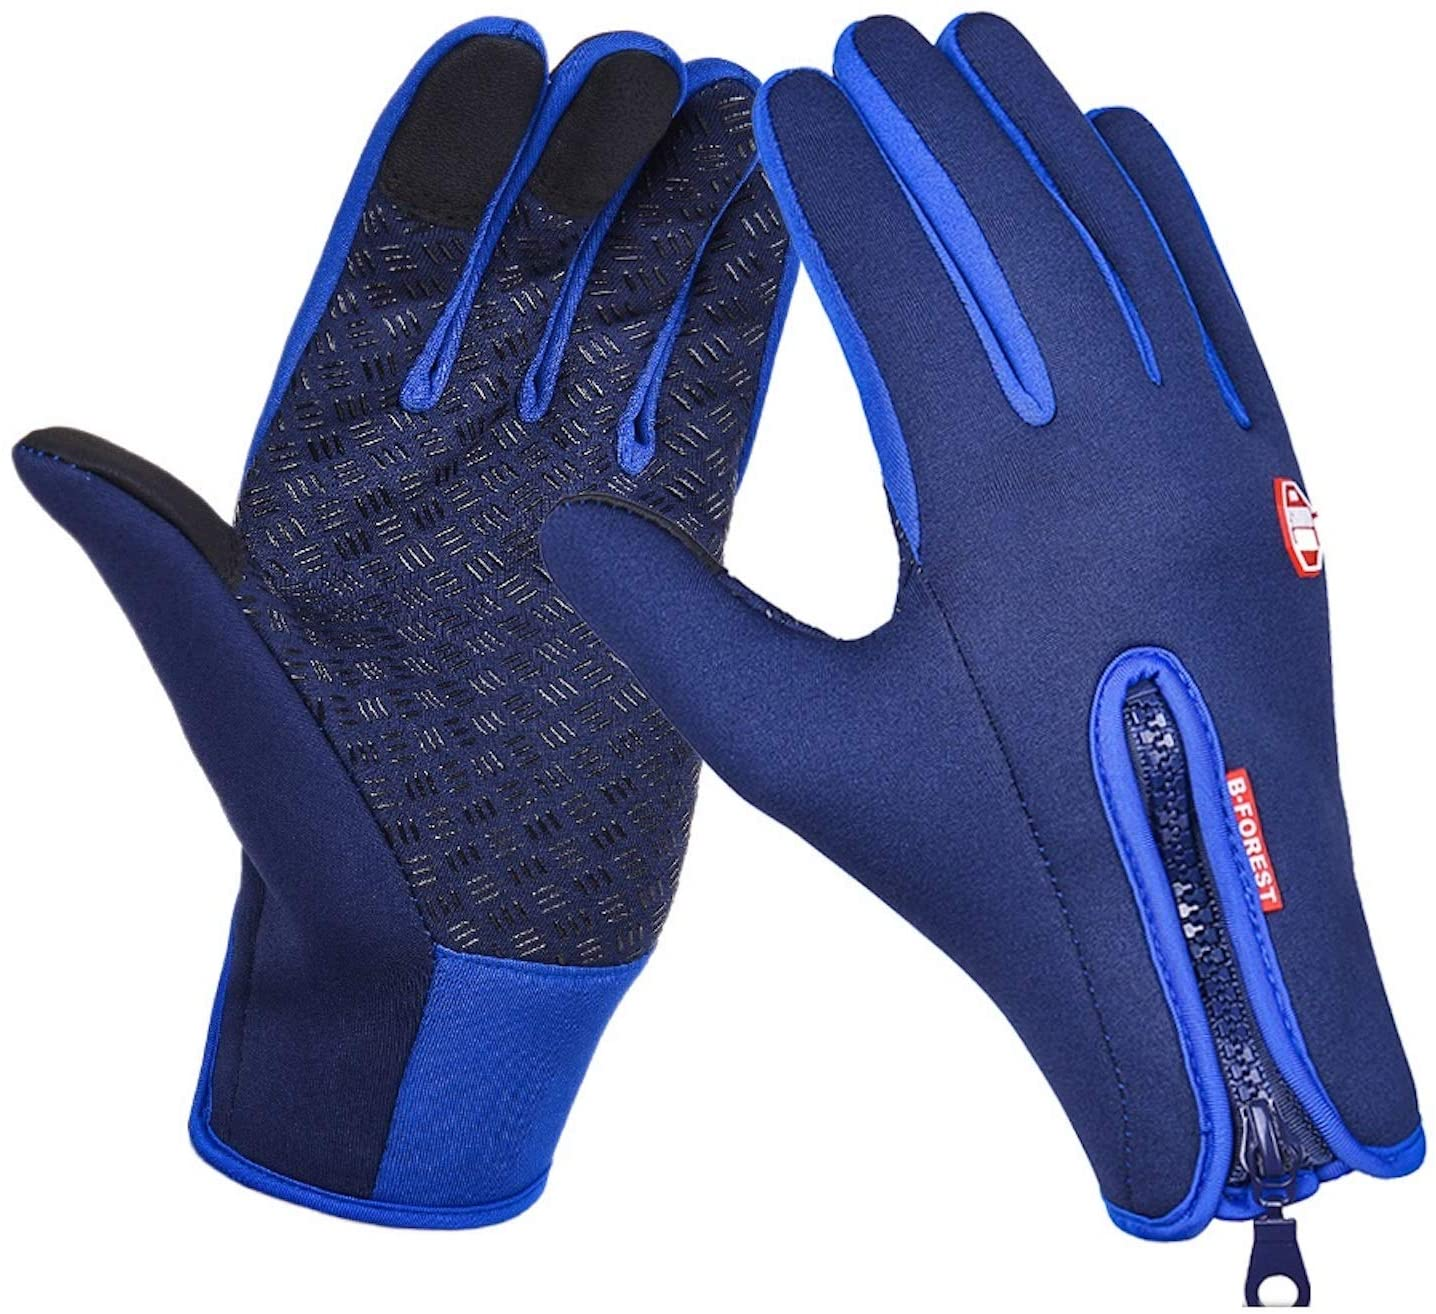 Cicilin Gloves, Unisex Sports Cycling Gloves Winter-Autumn Adjustable Waterproof Touch Screen Gloves Windproof Thermal Silicone Non-Slip for Outedoor Sports Dark Blue Silicone XL